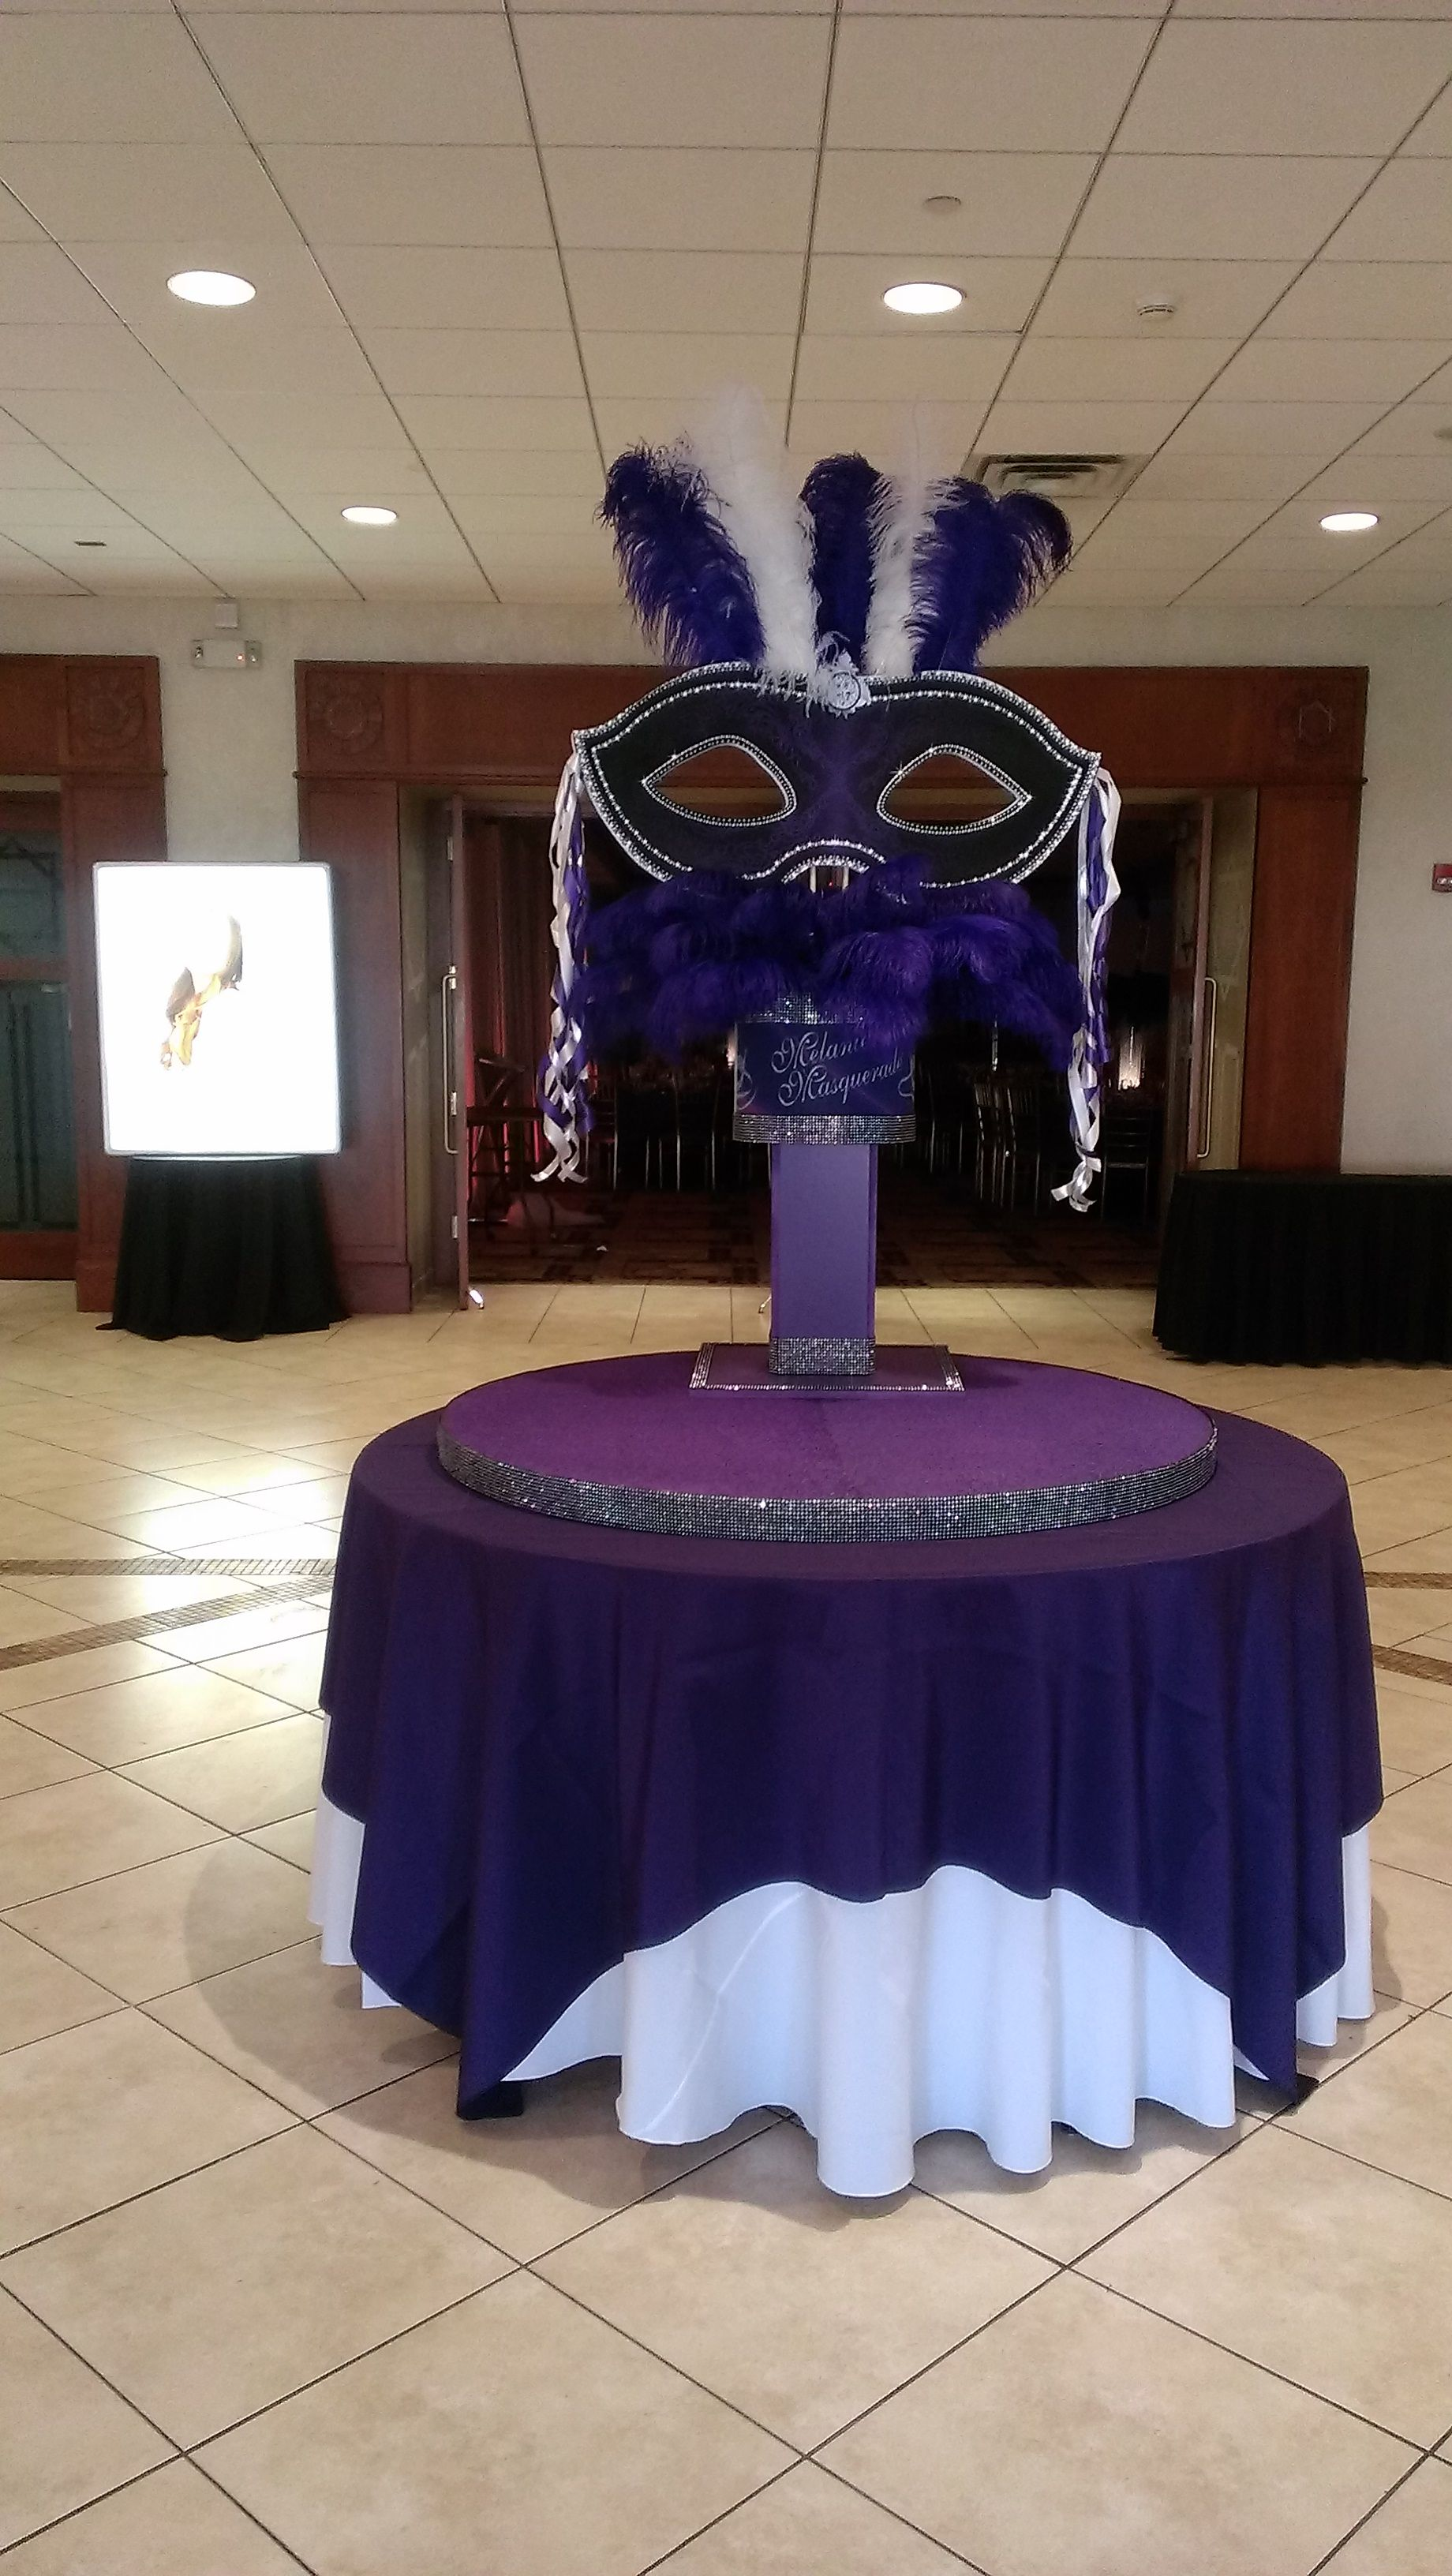 Masquerade Wedding Spice Up Your Mardi Gras Theme With These Type Of Masked Centerpieces Created By Lighter Than